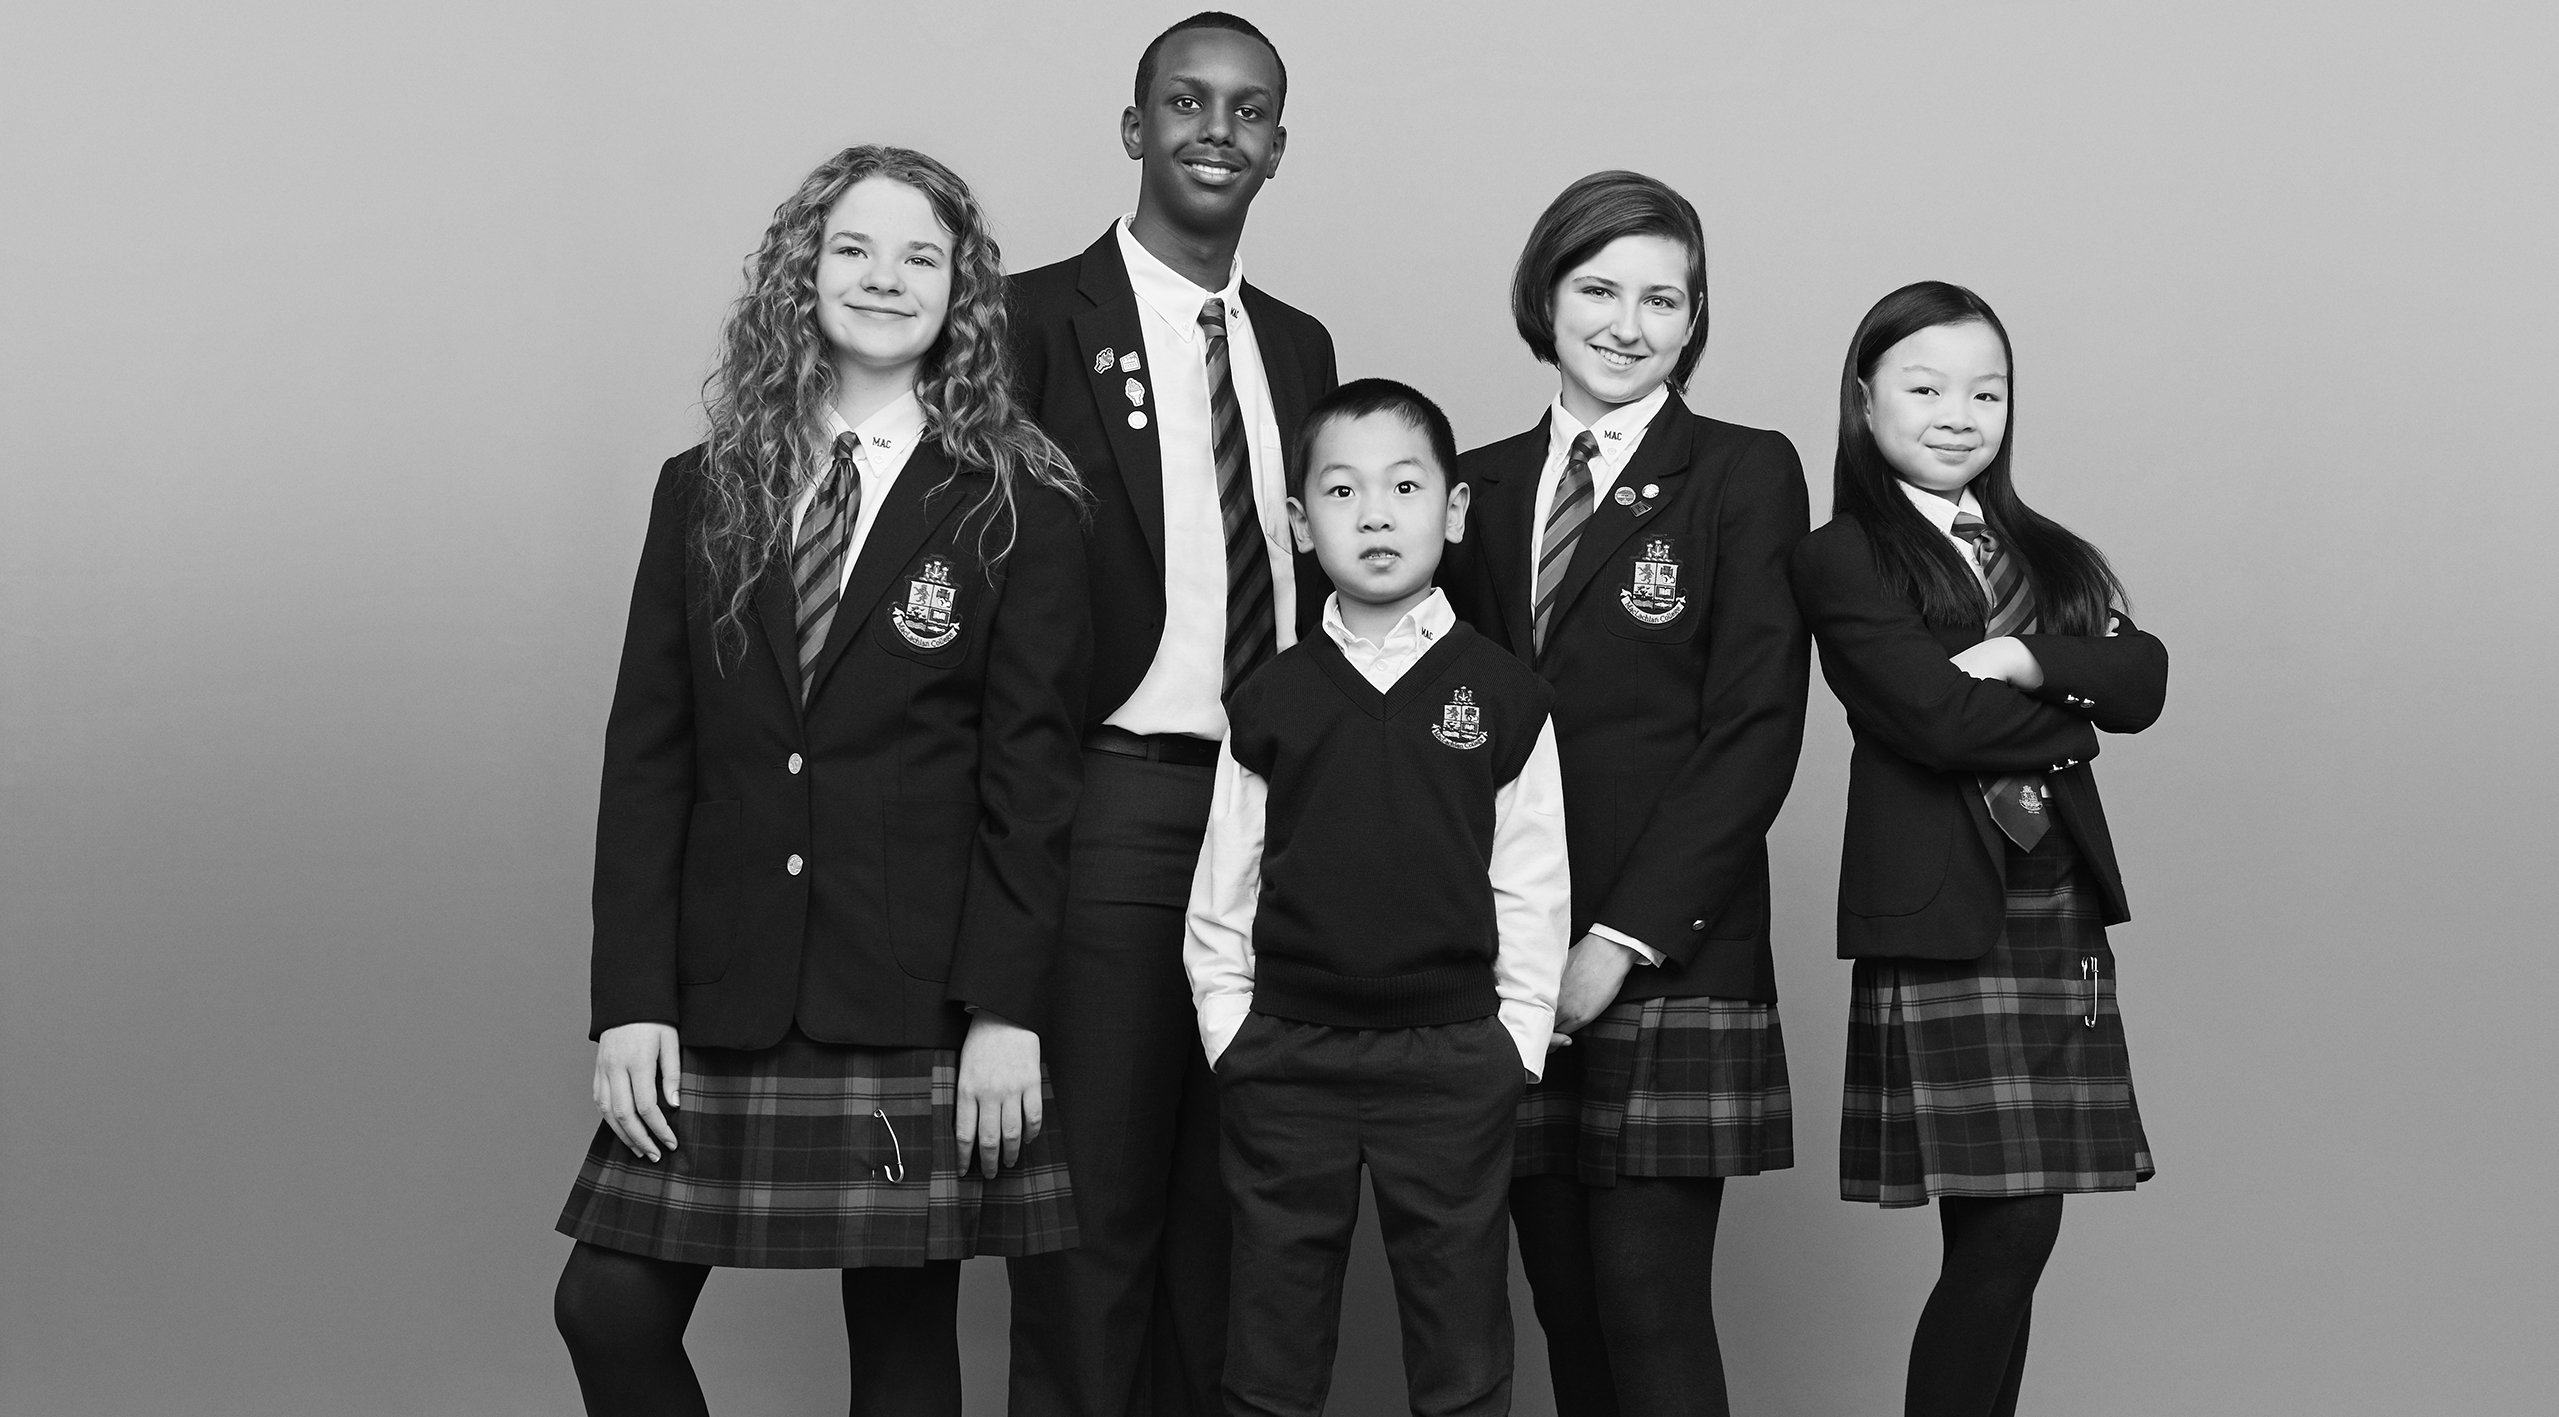 Maclachlan College Students Diversity